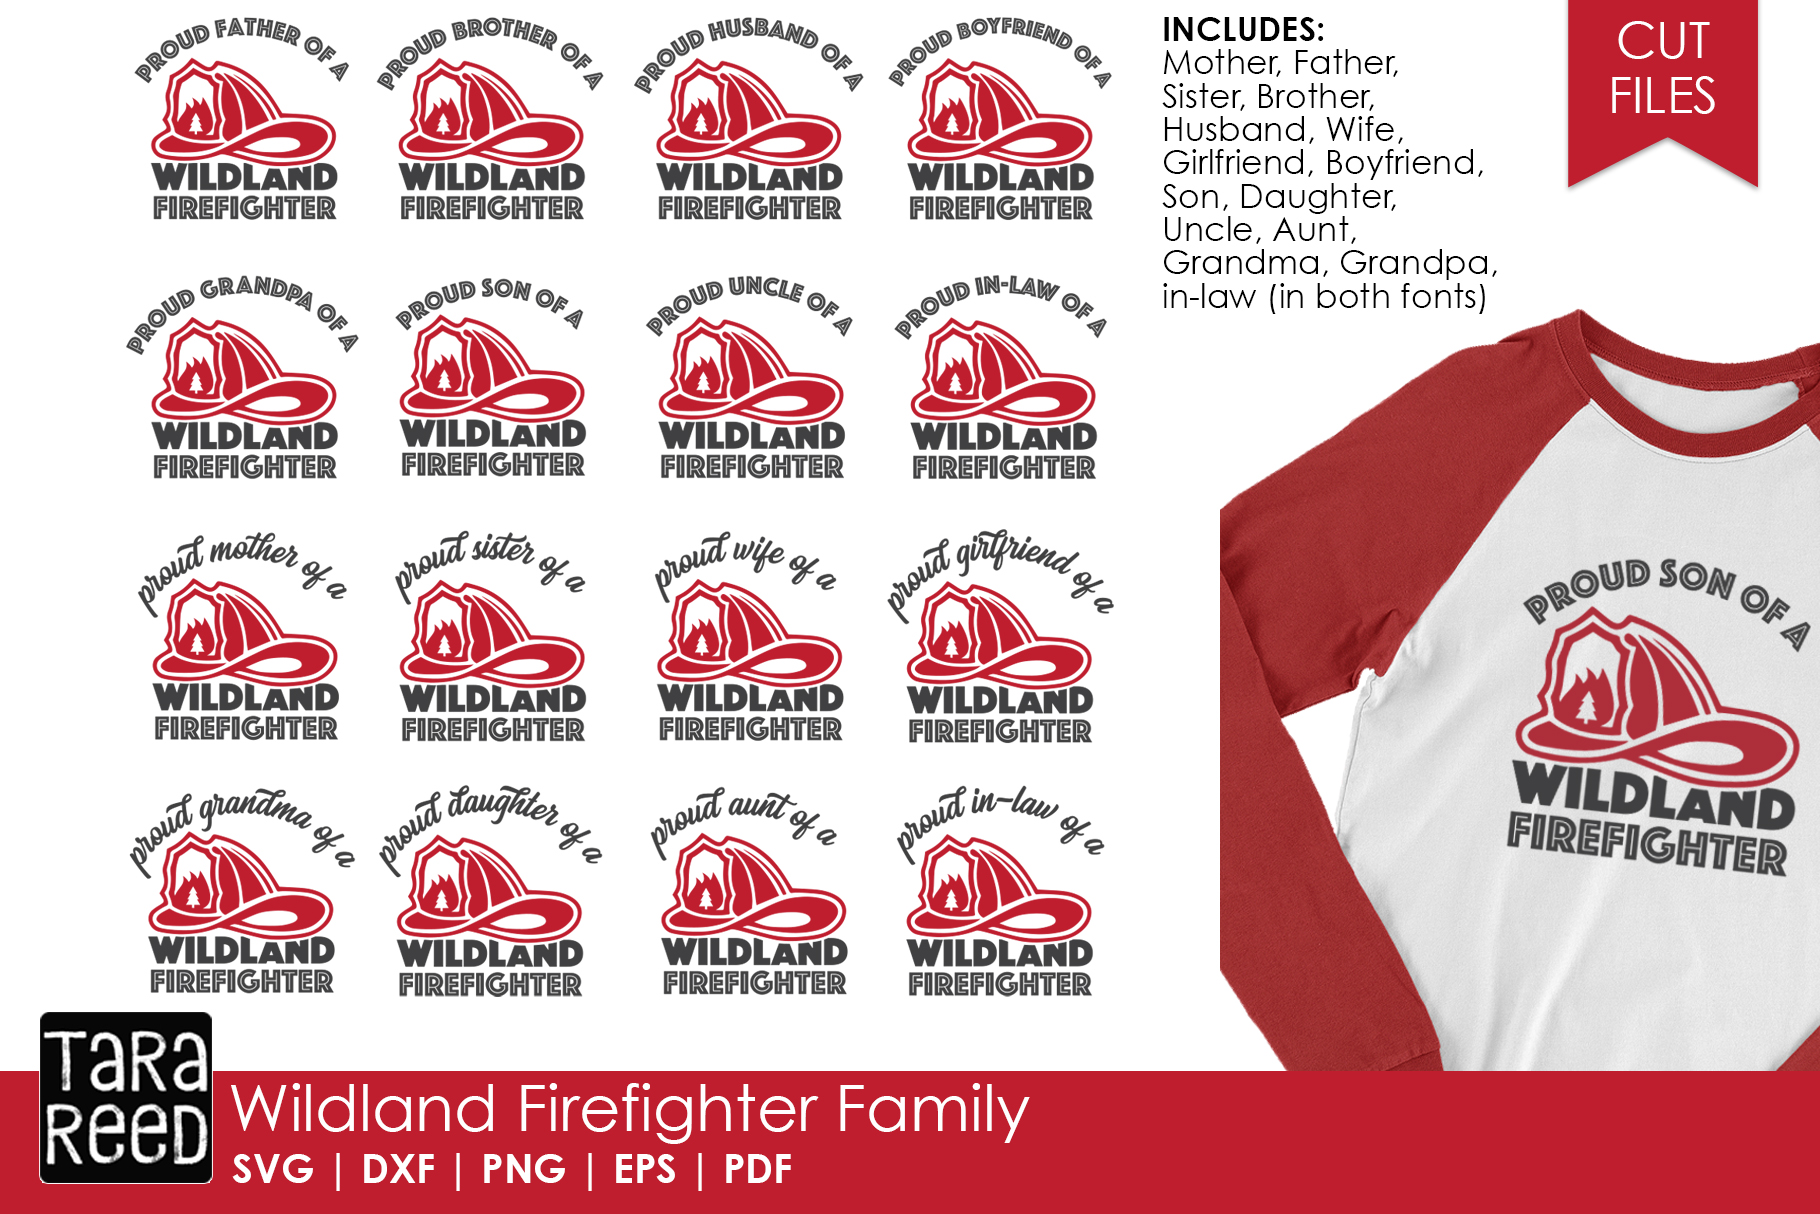 Wildland Firefighter Family - Firefighter SVG and Cut Files example image 1